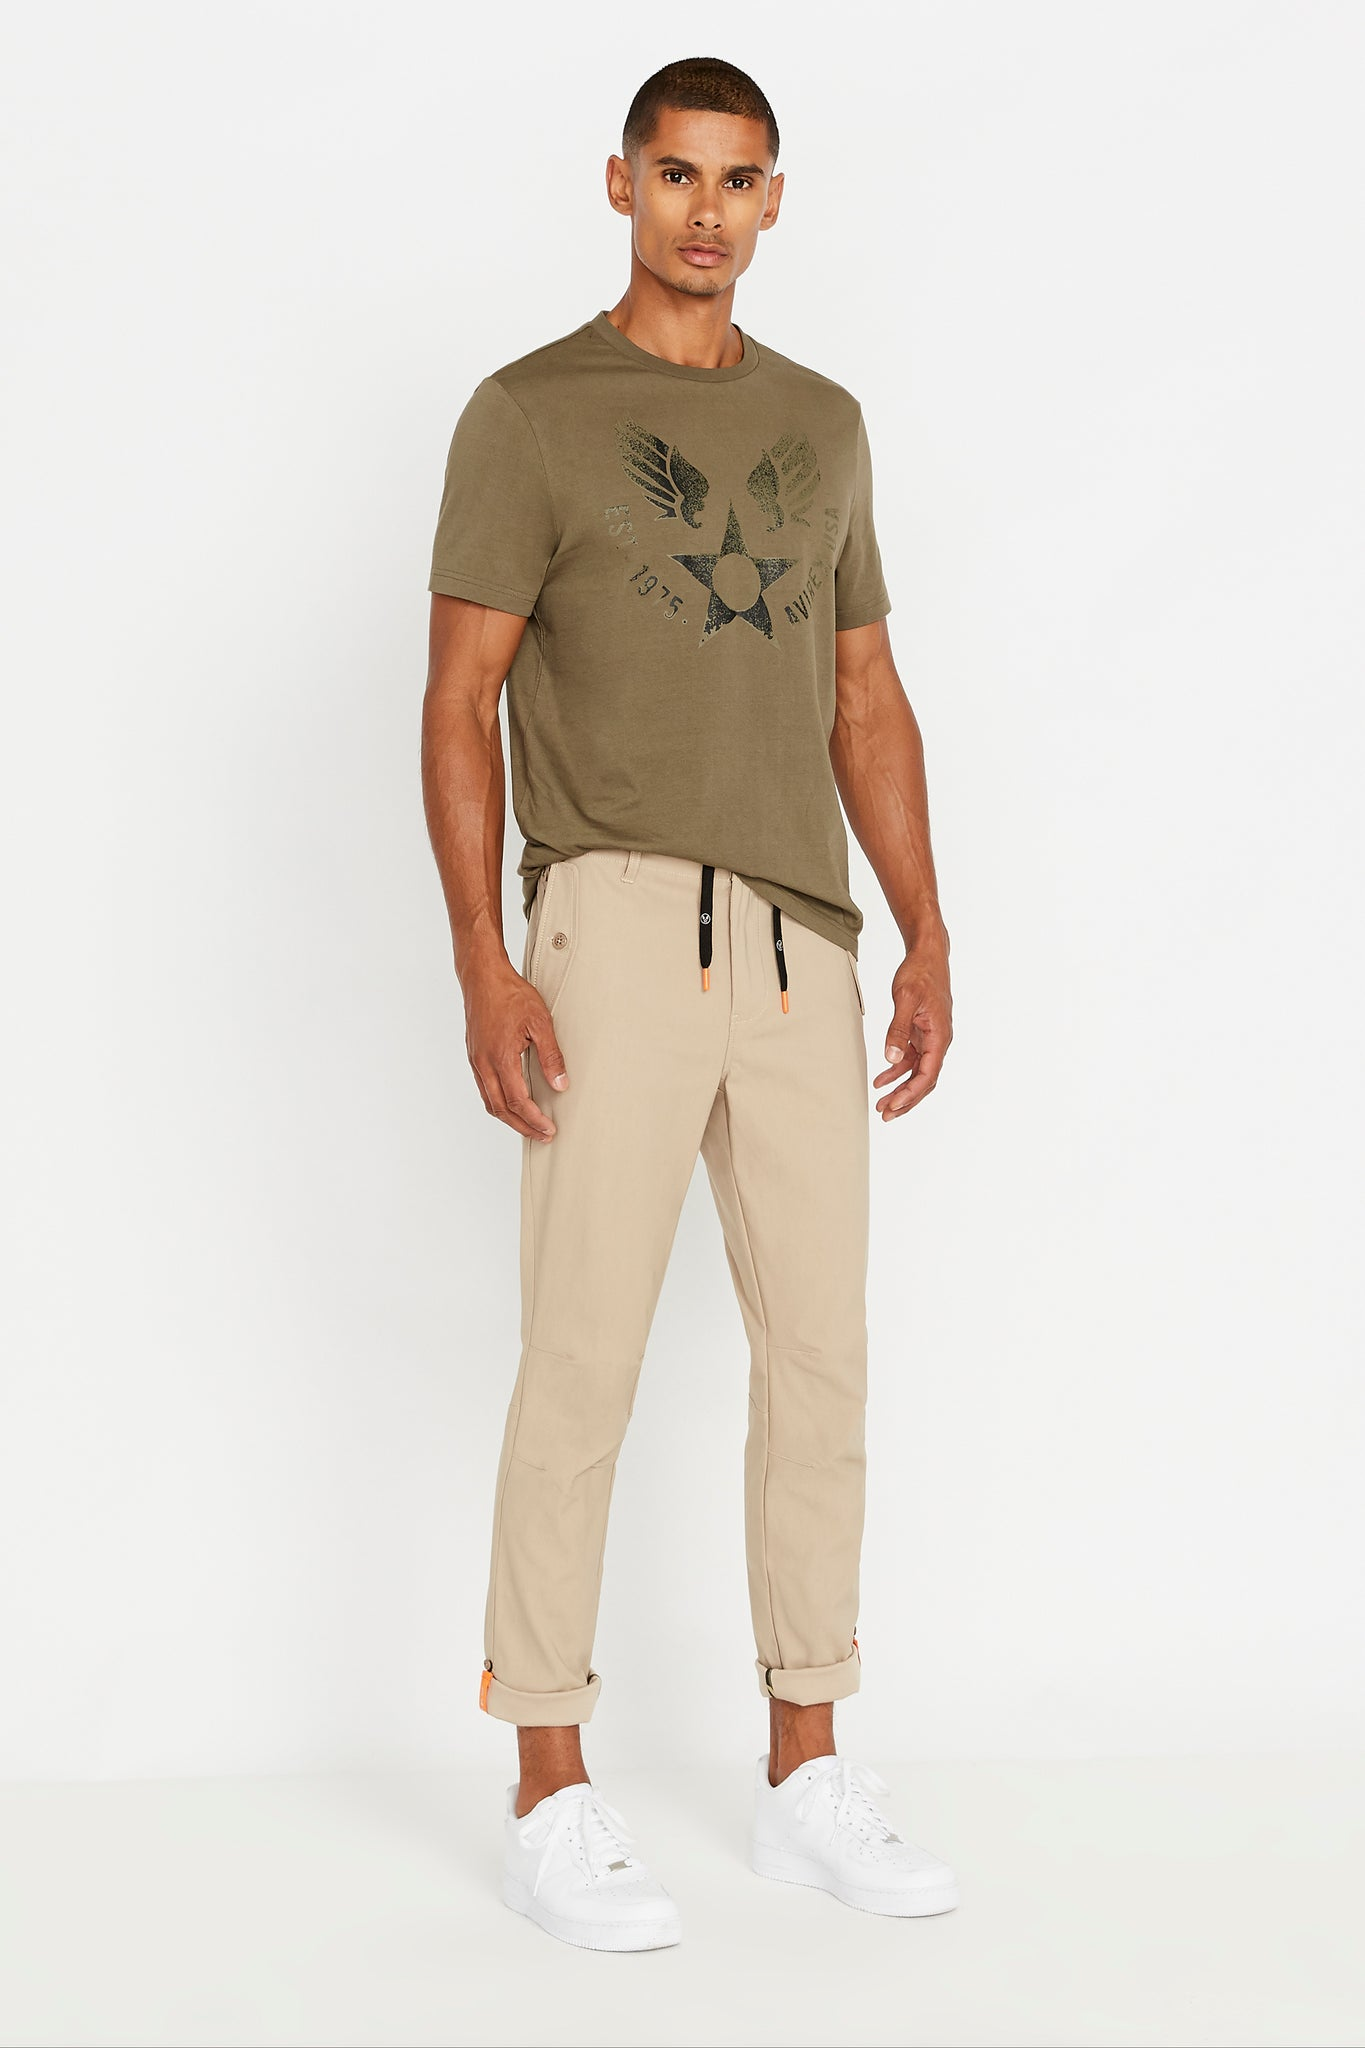 Full View of men wearing a khaki pants with side pockets and olive short sleeve crew neck T-shirt